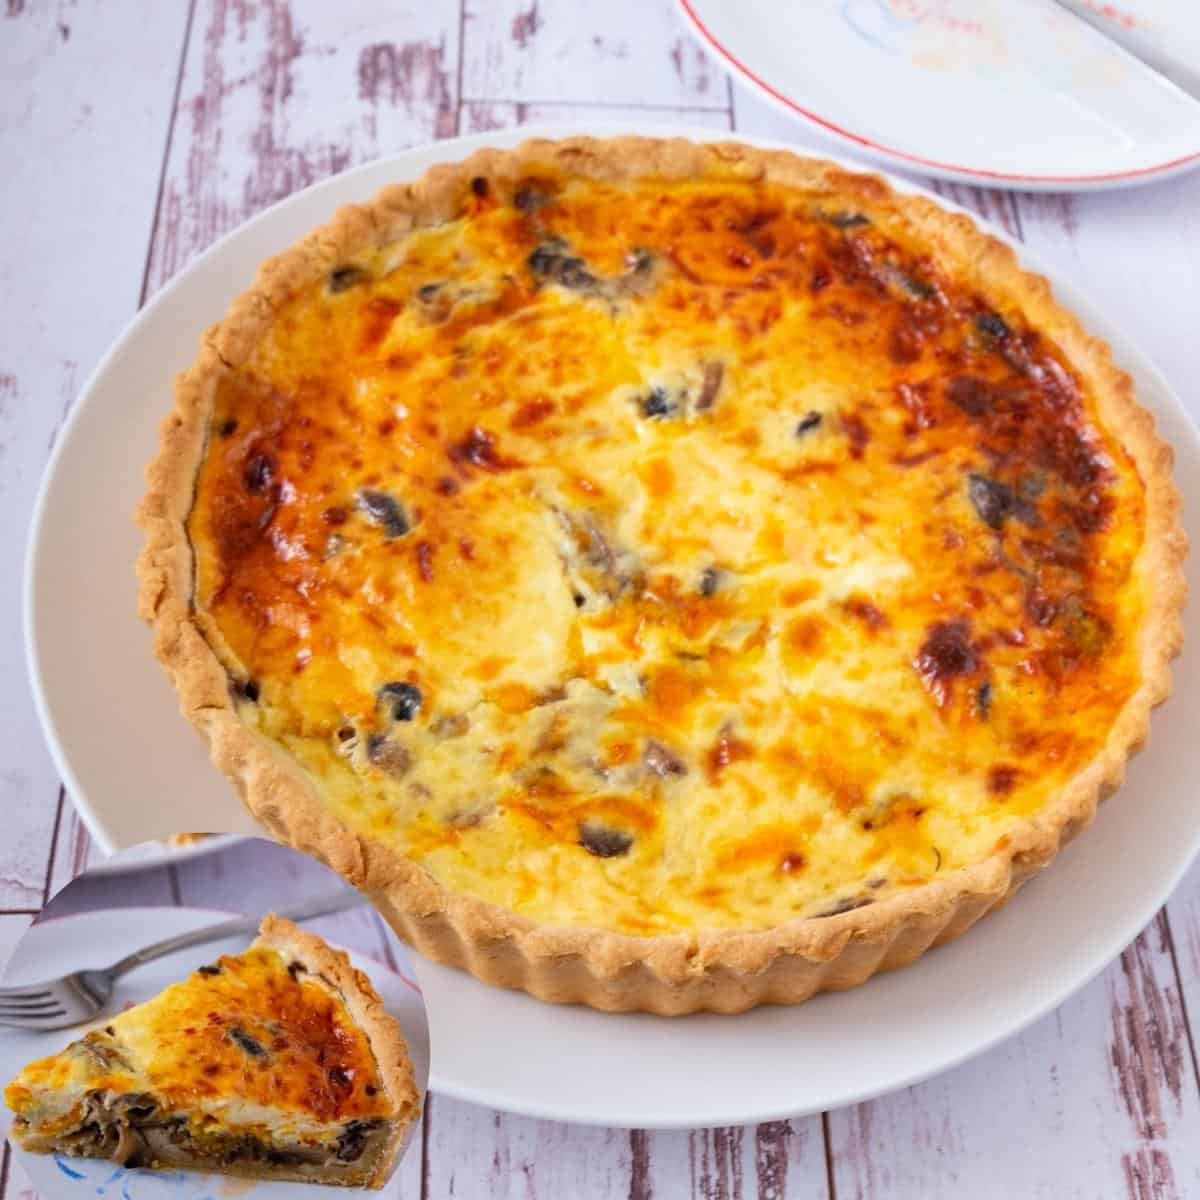 Quiche on a table with mushrooms.